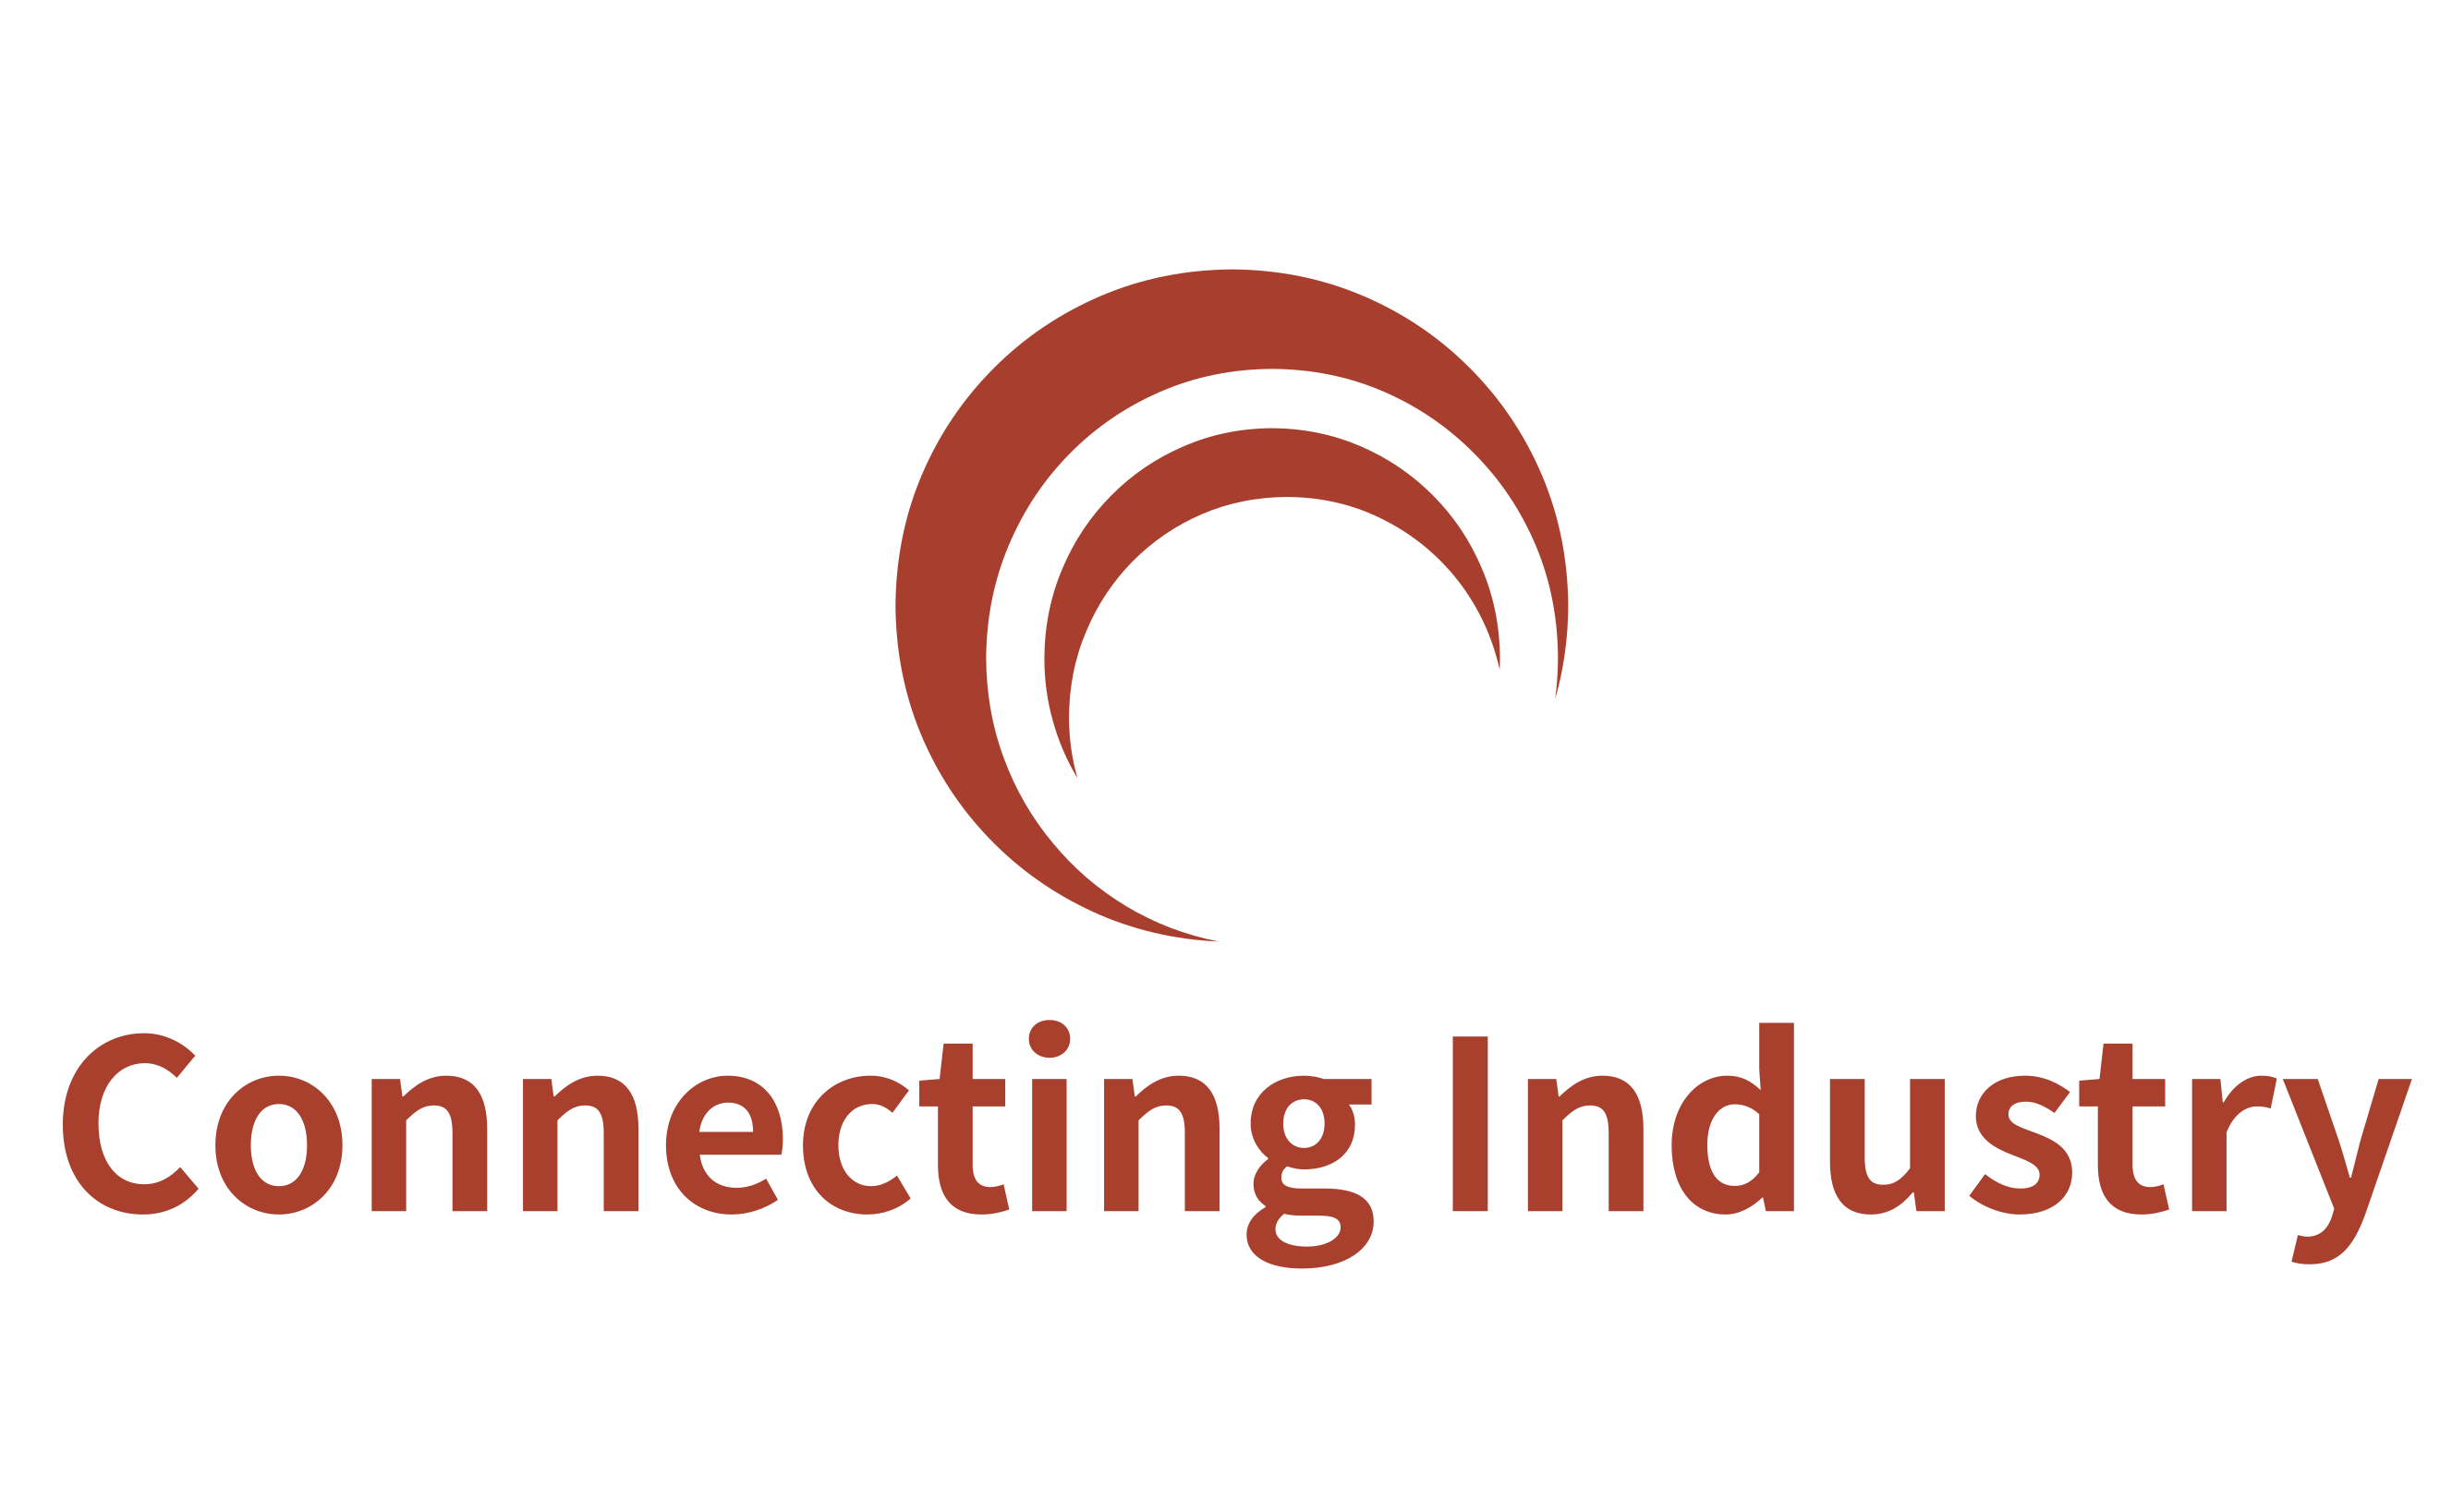 Connecting Industry